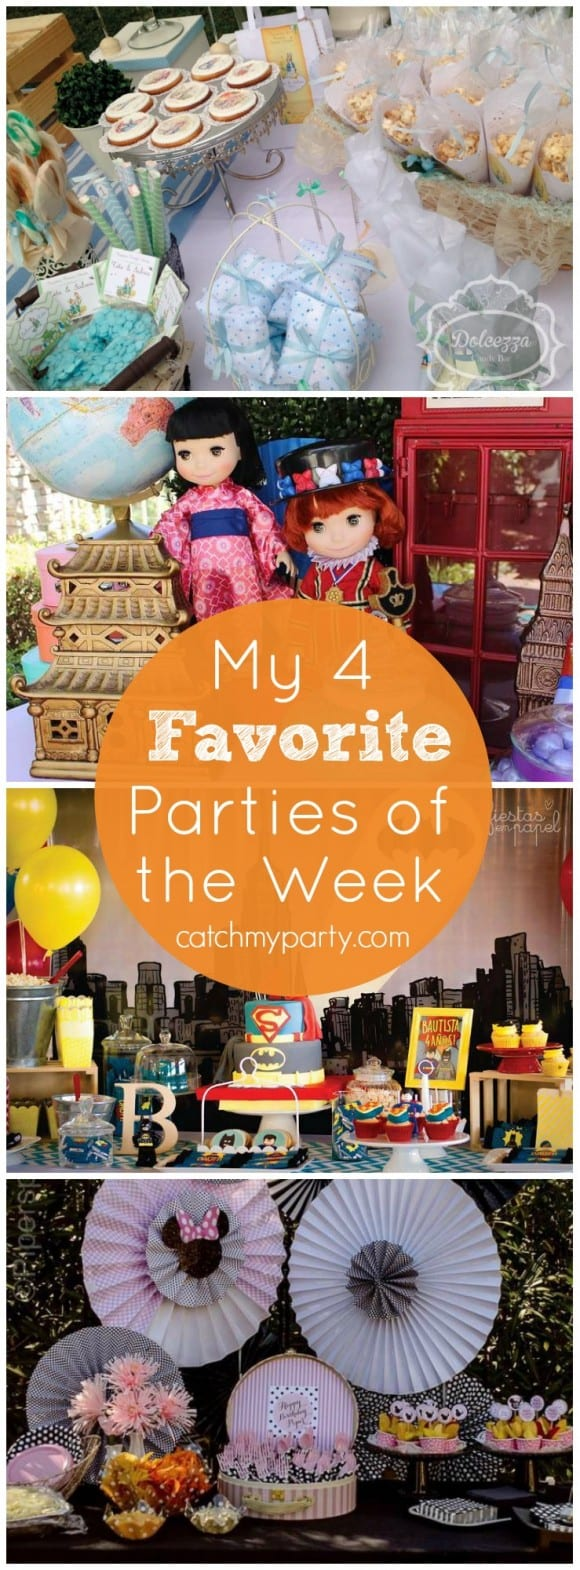 My 4 Favorite Parties: Minnie Mouse Bowtique Party, It's a Small World Party, Lego Superhero Party, and Peter Rabbit 1st Birthday | Catchmyparty.com